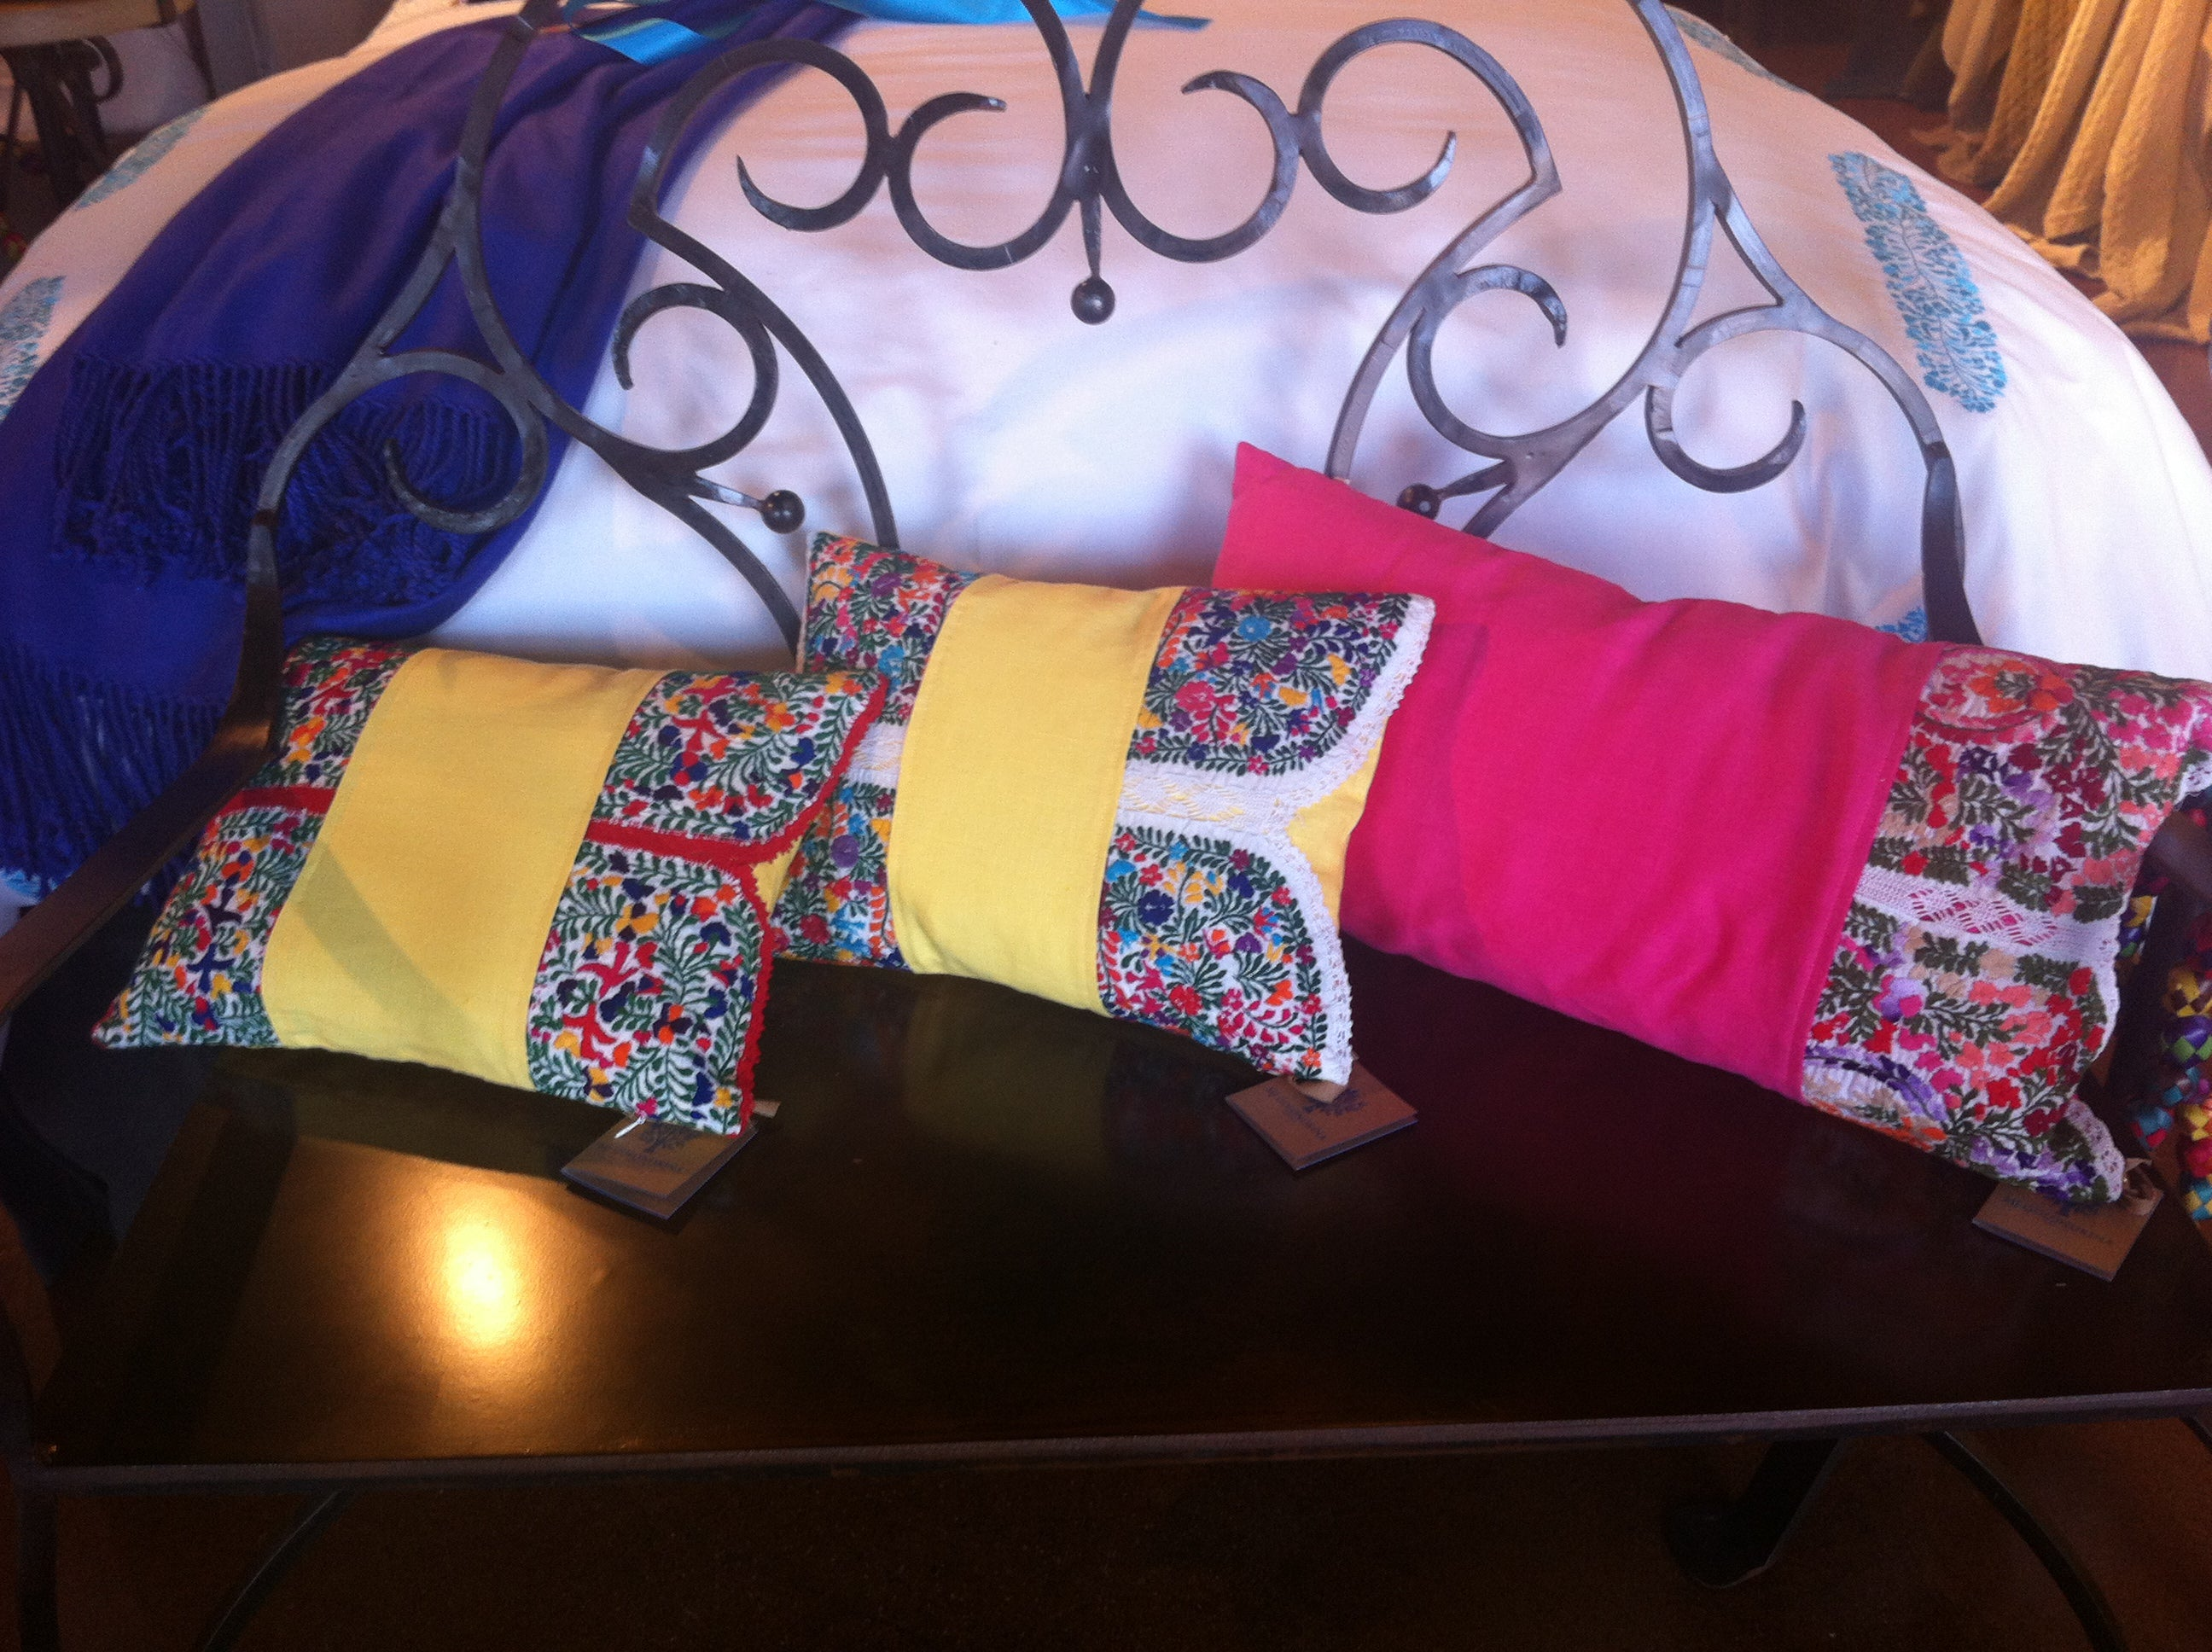 Colorful pillows with Mexican flair displayed on a bench at the foot of a bed